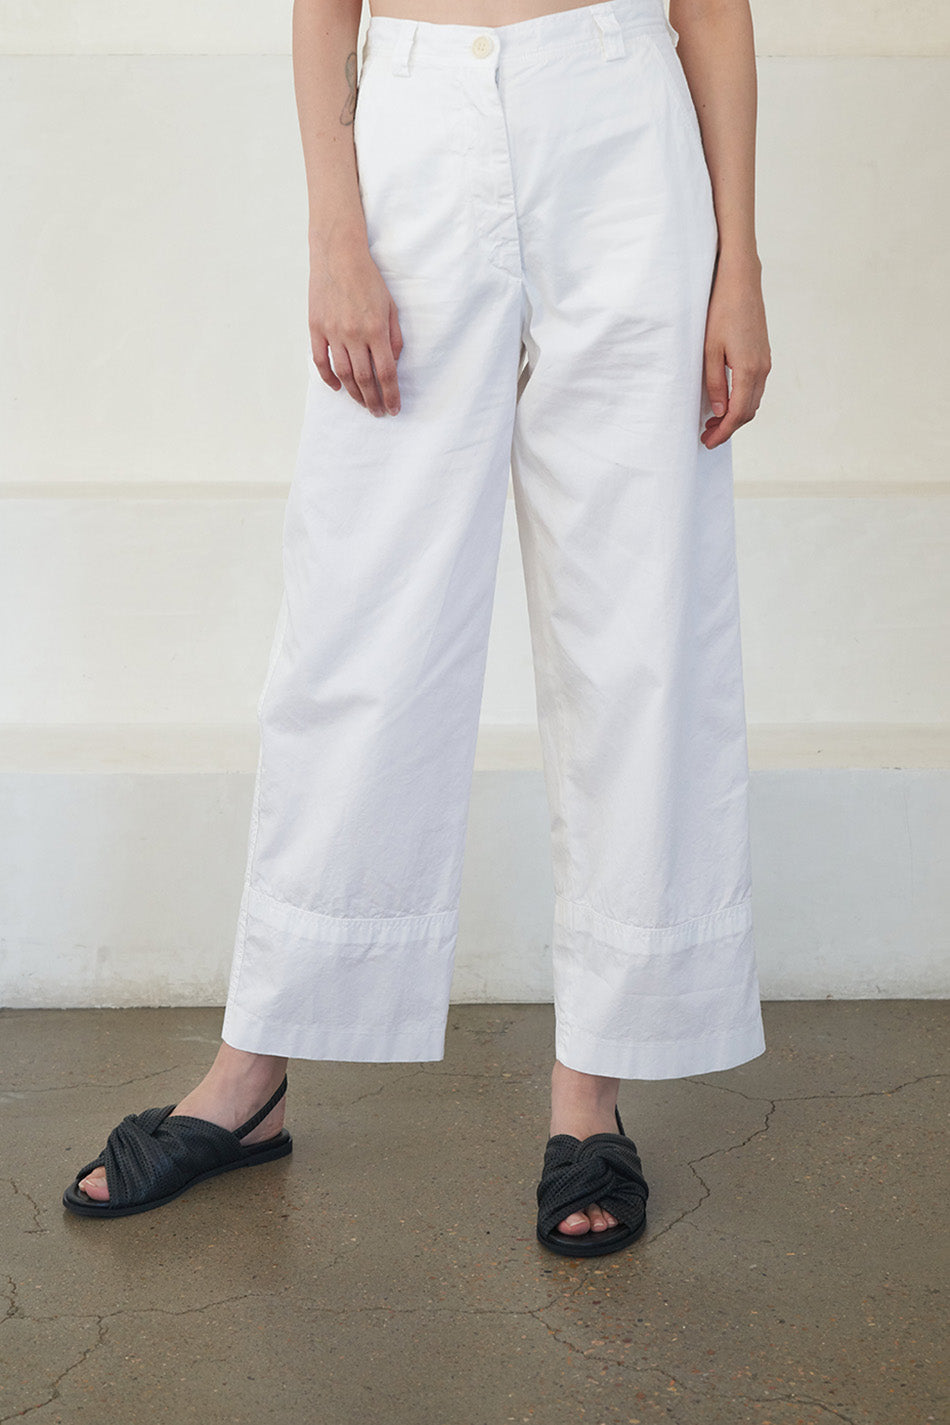 DRIES VAN NOTEN - casual pant, white